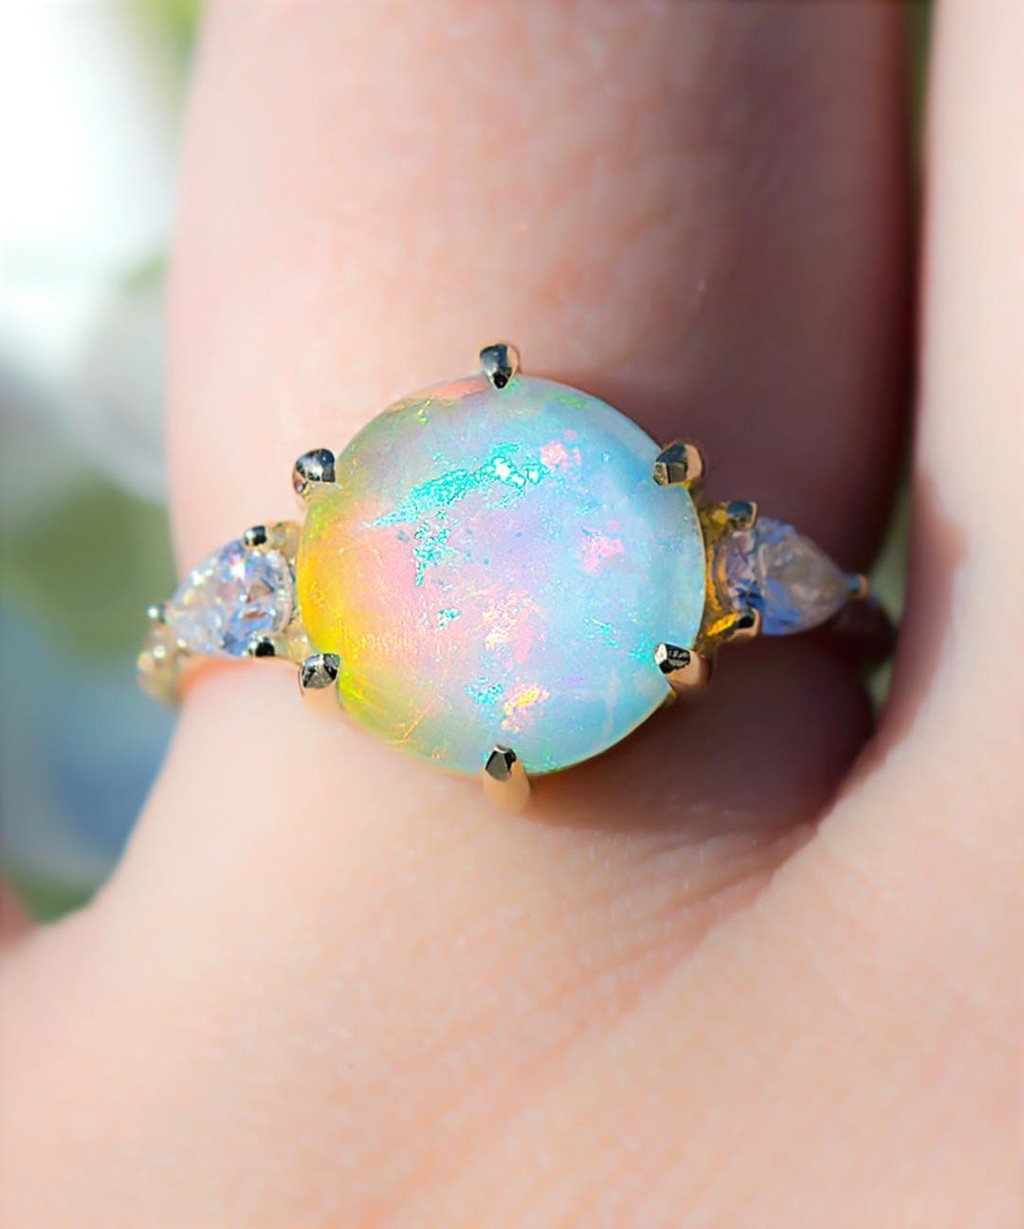 ✨🌈💗 I can't with this insane Opal... A glorious, bold, and vibrant 10mm round Ethically Sourced Opal sits at the center of